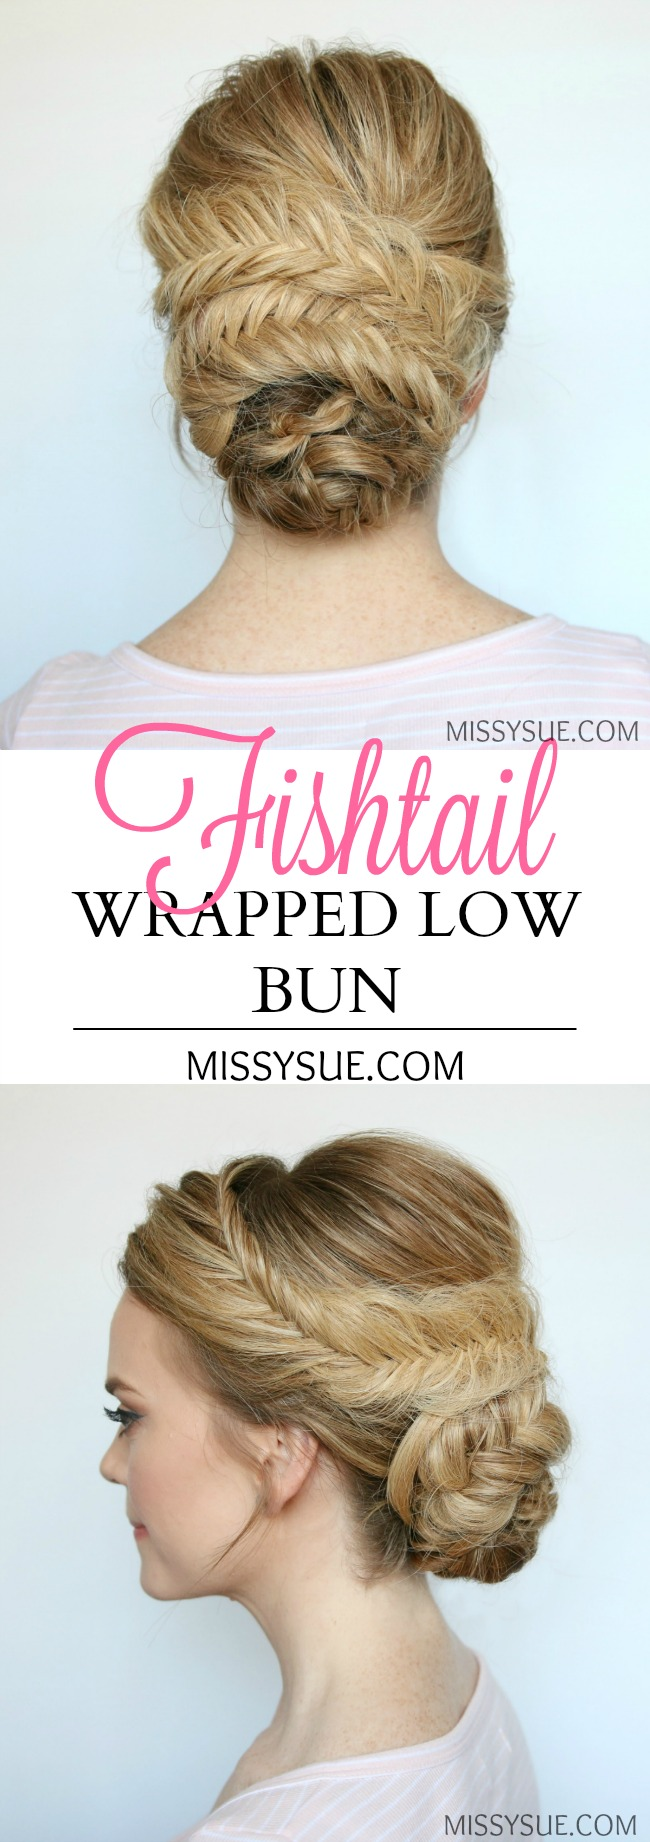 fishtail-wrapped-low-bun-tutorial-prom-bridal